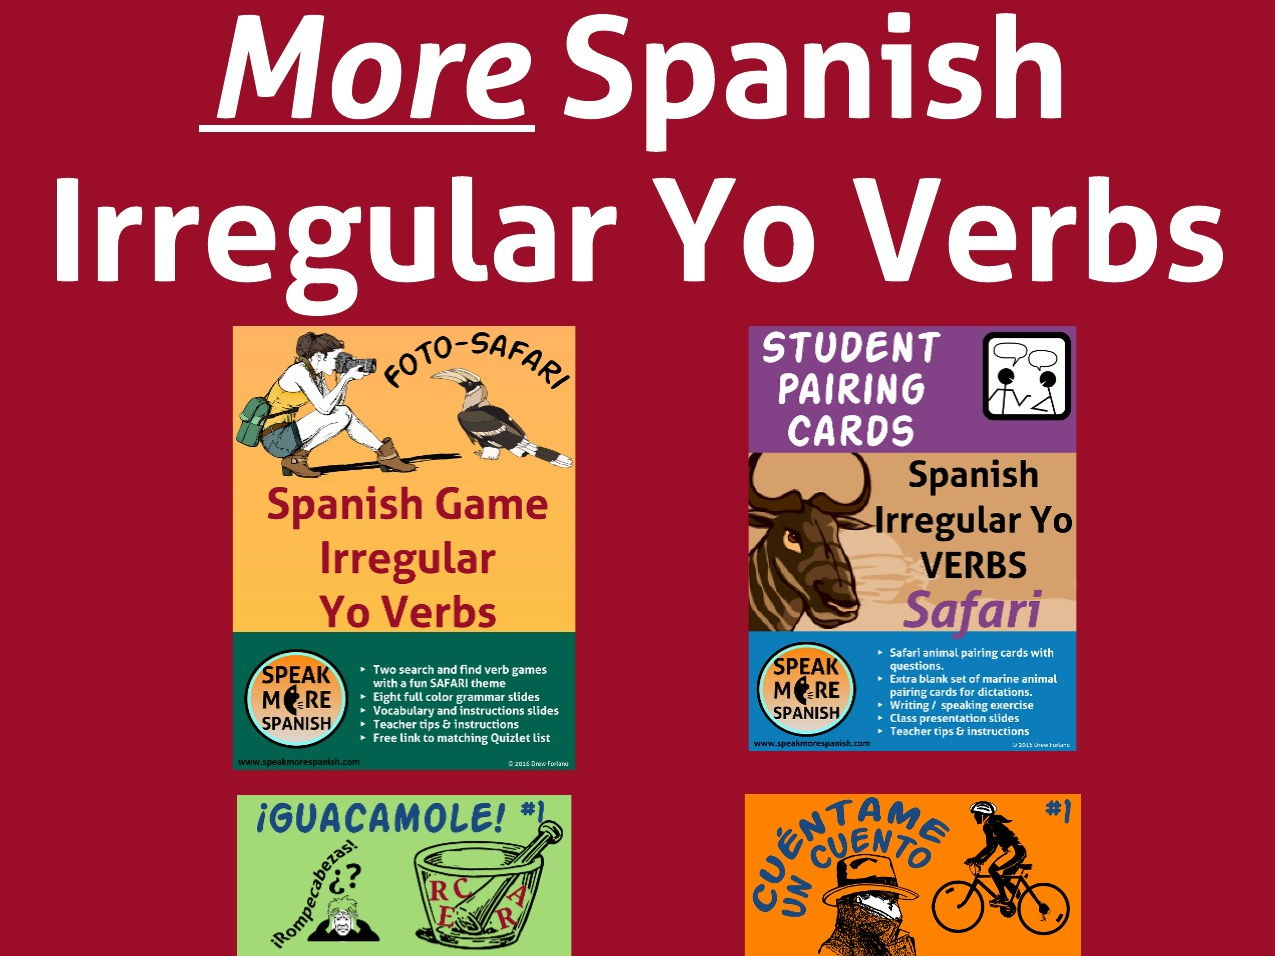 More Spanish Present Irregular Yo Verbs Bundle 2